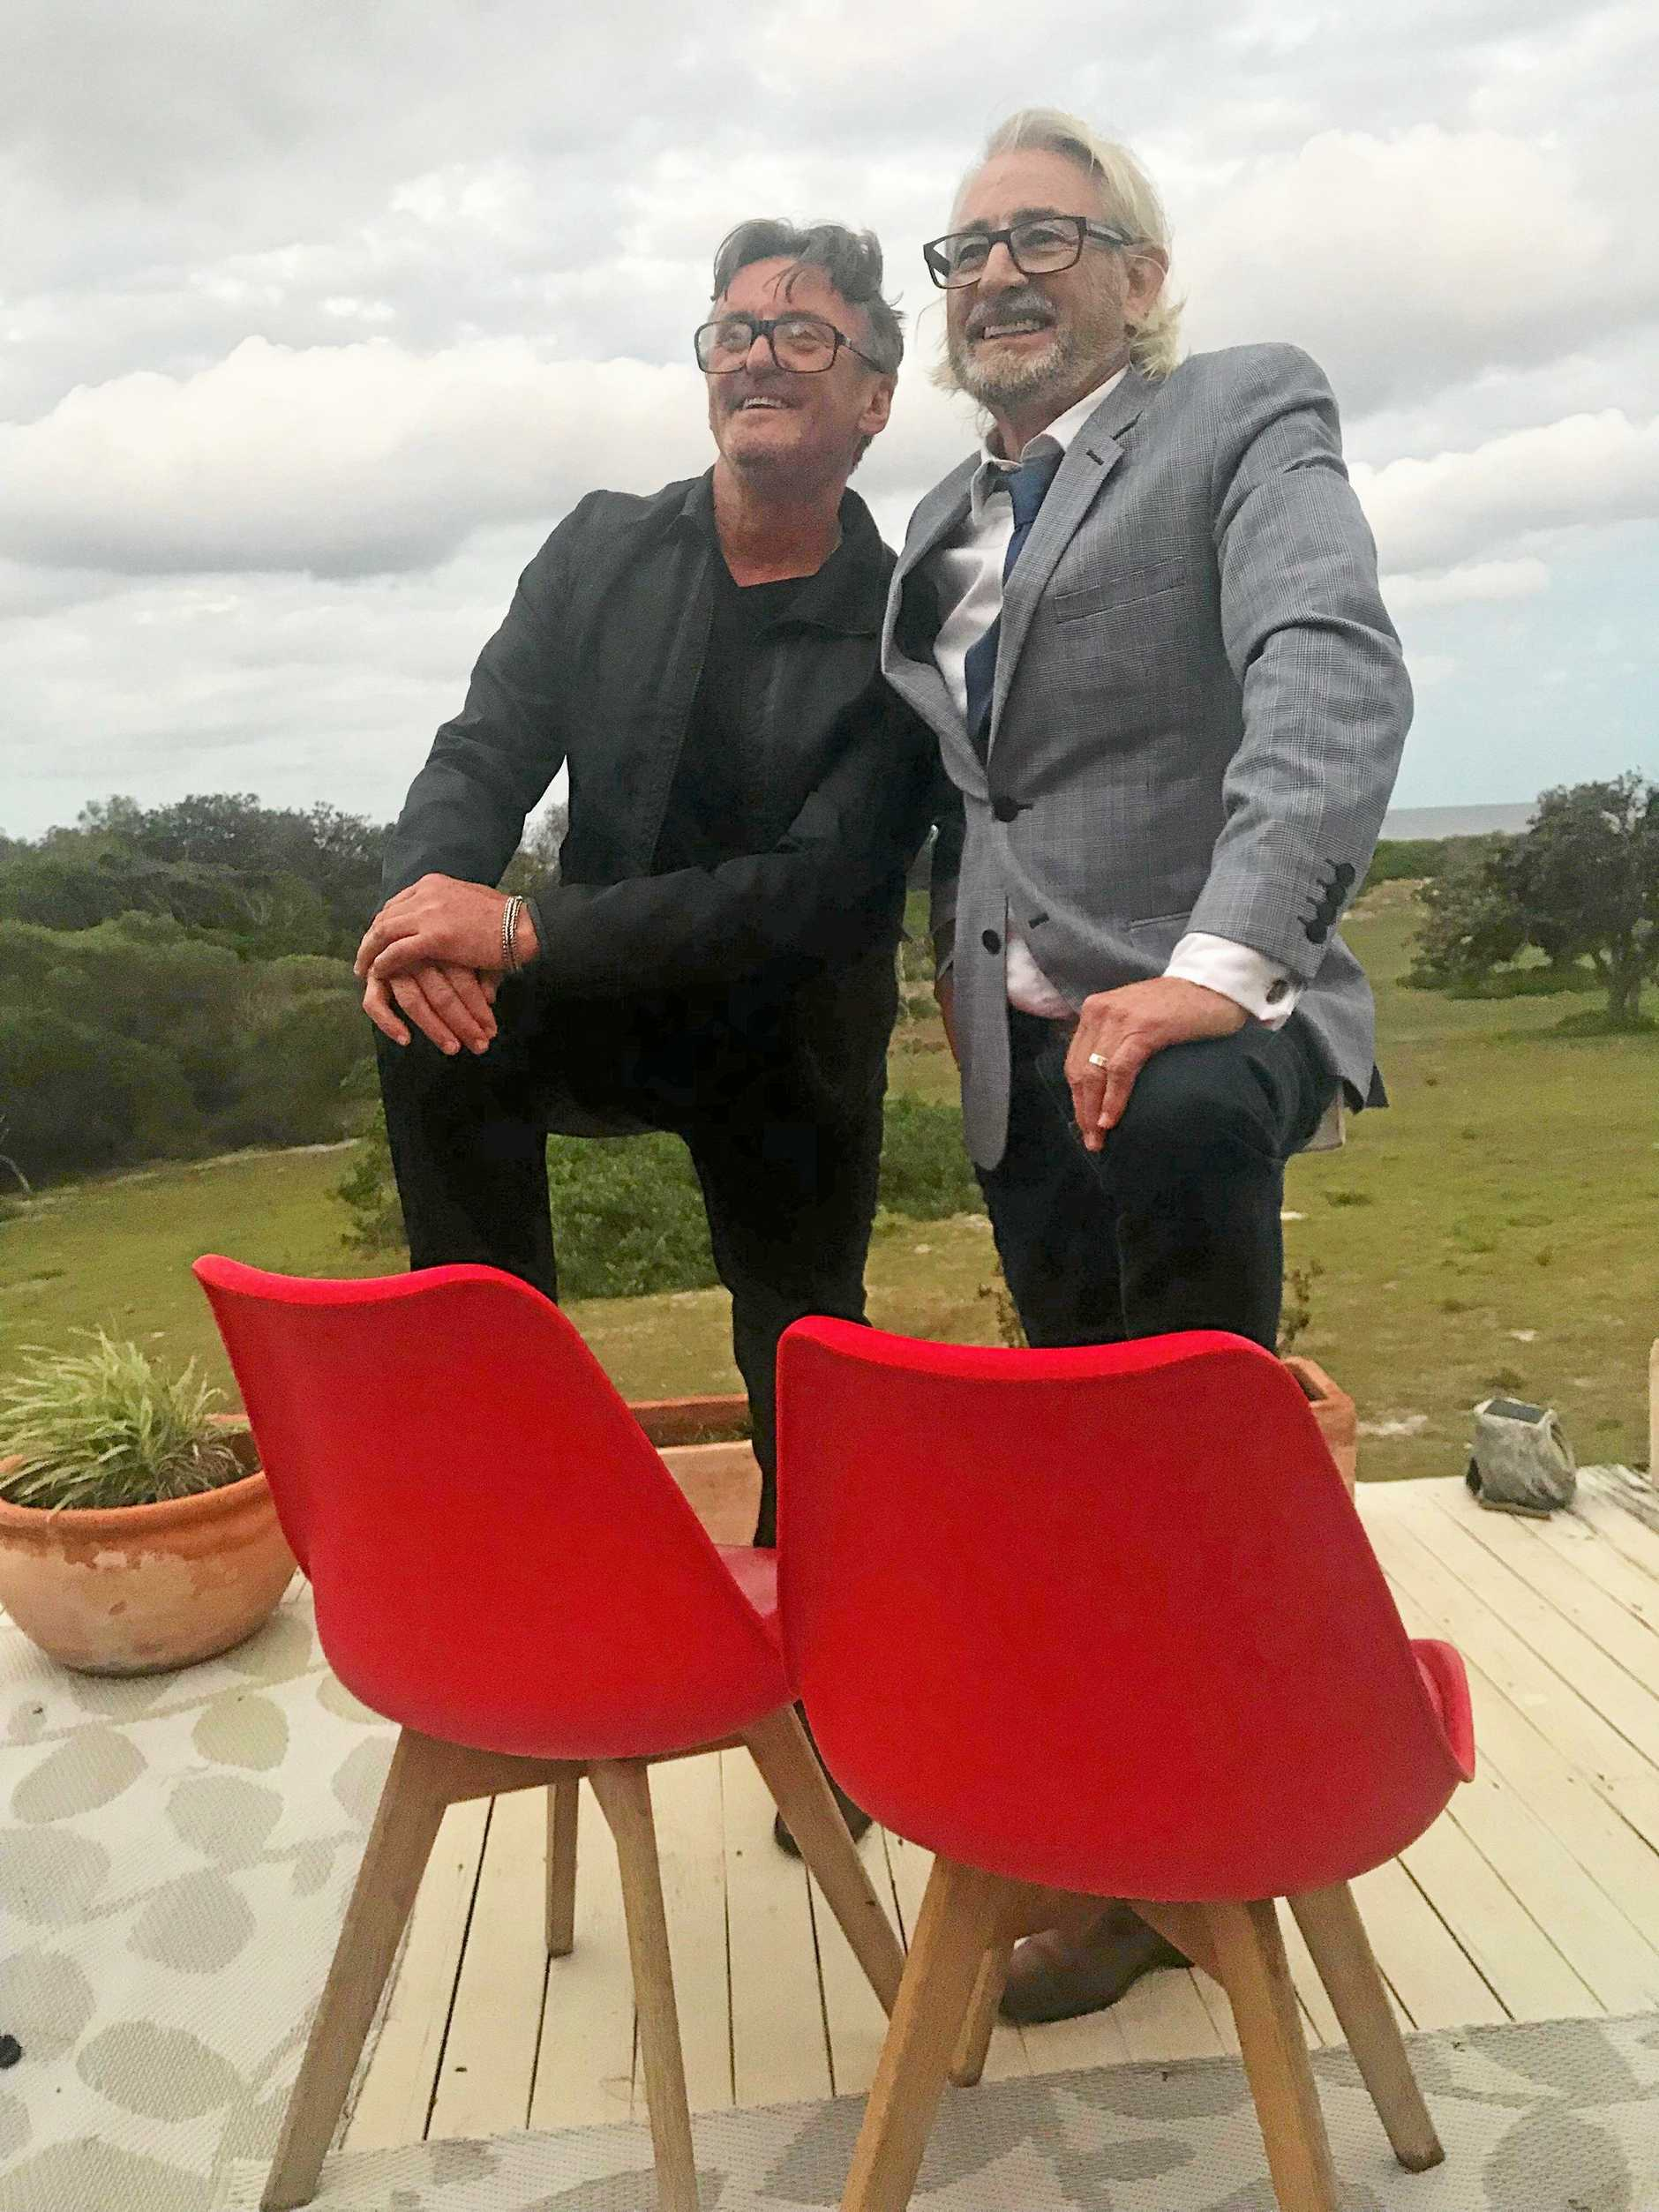 Music producer Mark Edwards and Petrol Records owner Chris Murphy in Ballina introducing Mystify - A Musical Journey With Michael Hutchence Soundtrack.